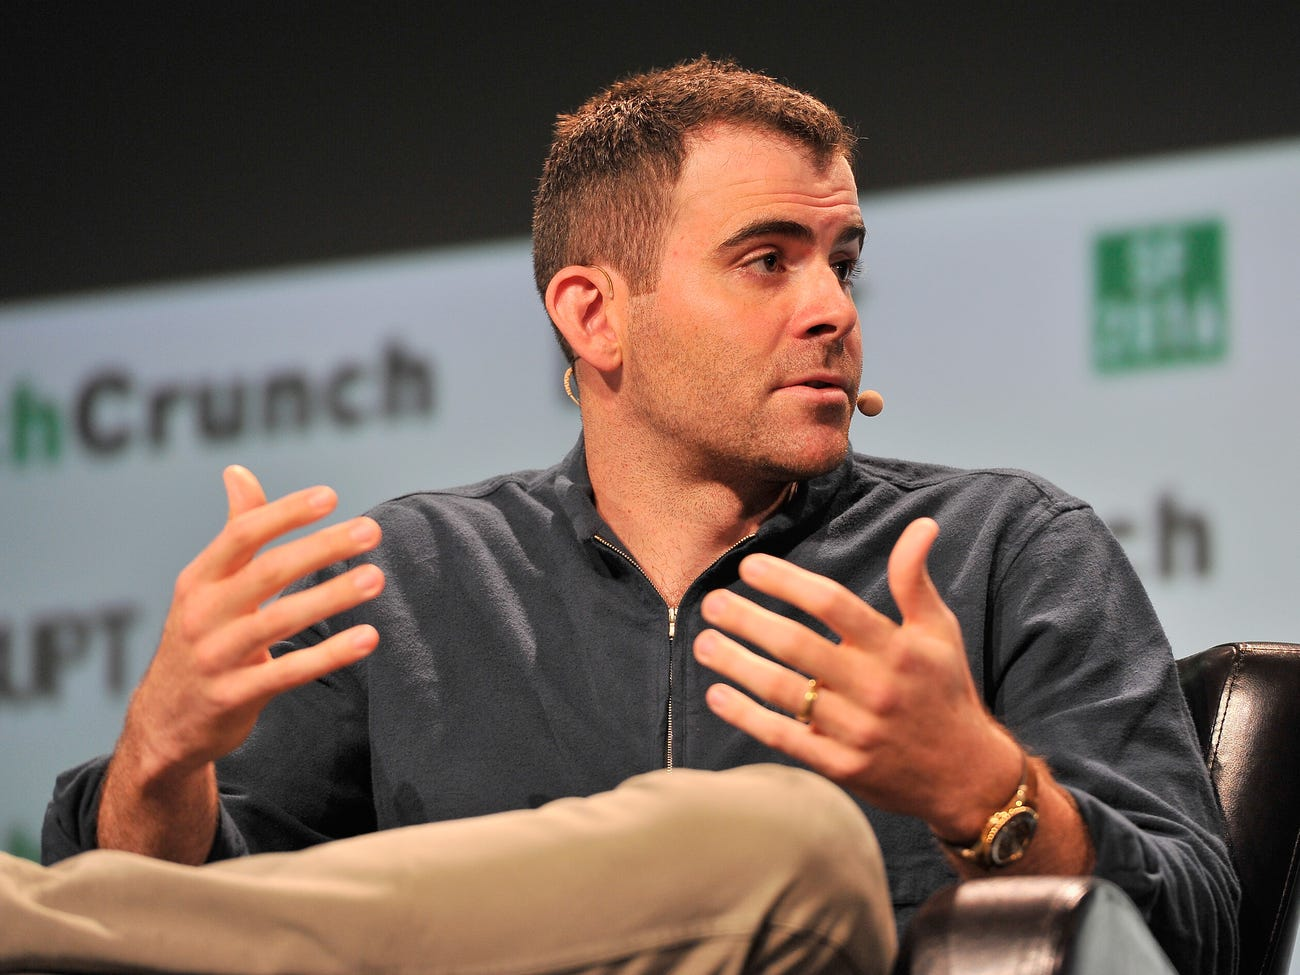 Instagram chief Adam Mosseri and his family have reportedly been targeted by multiple 'swatting' calls, drawing armed police to their homes in San Francisco and New York